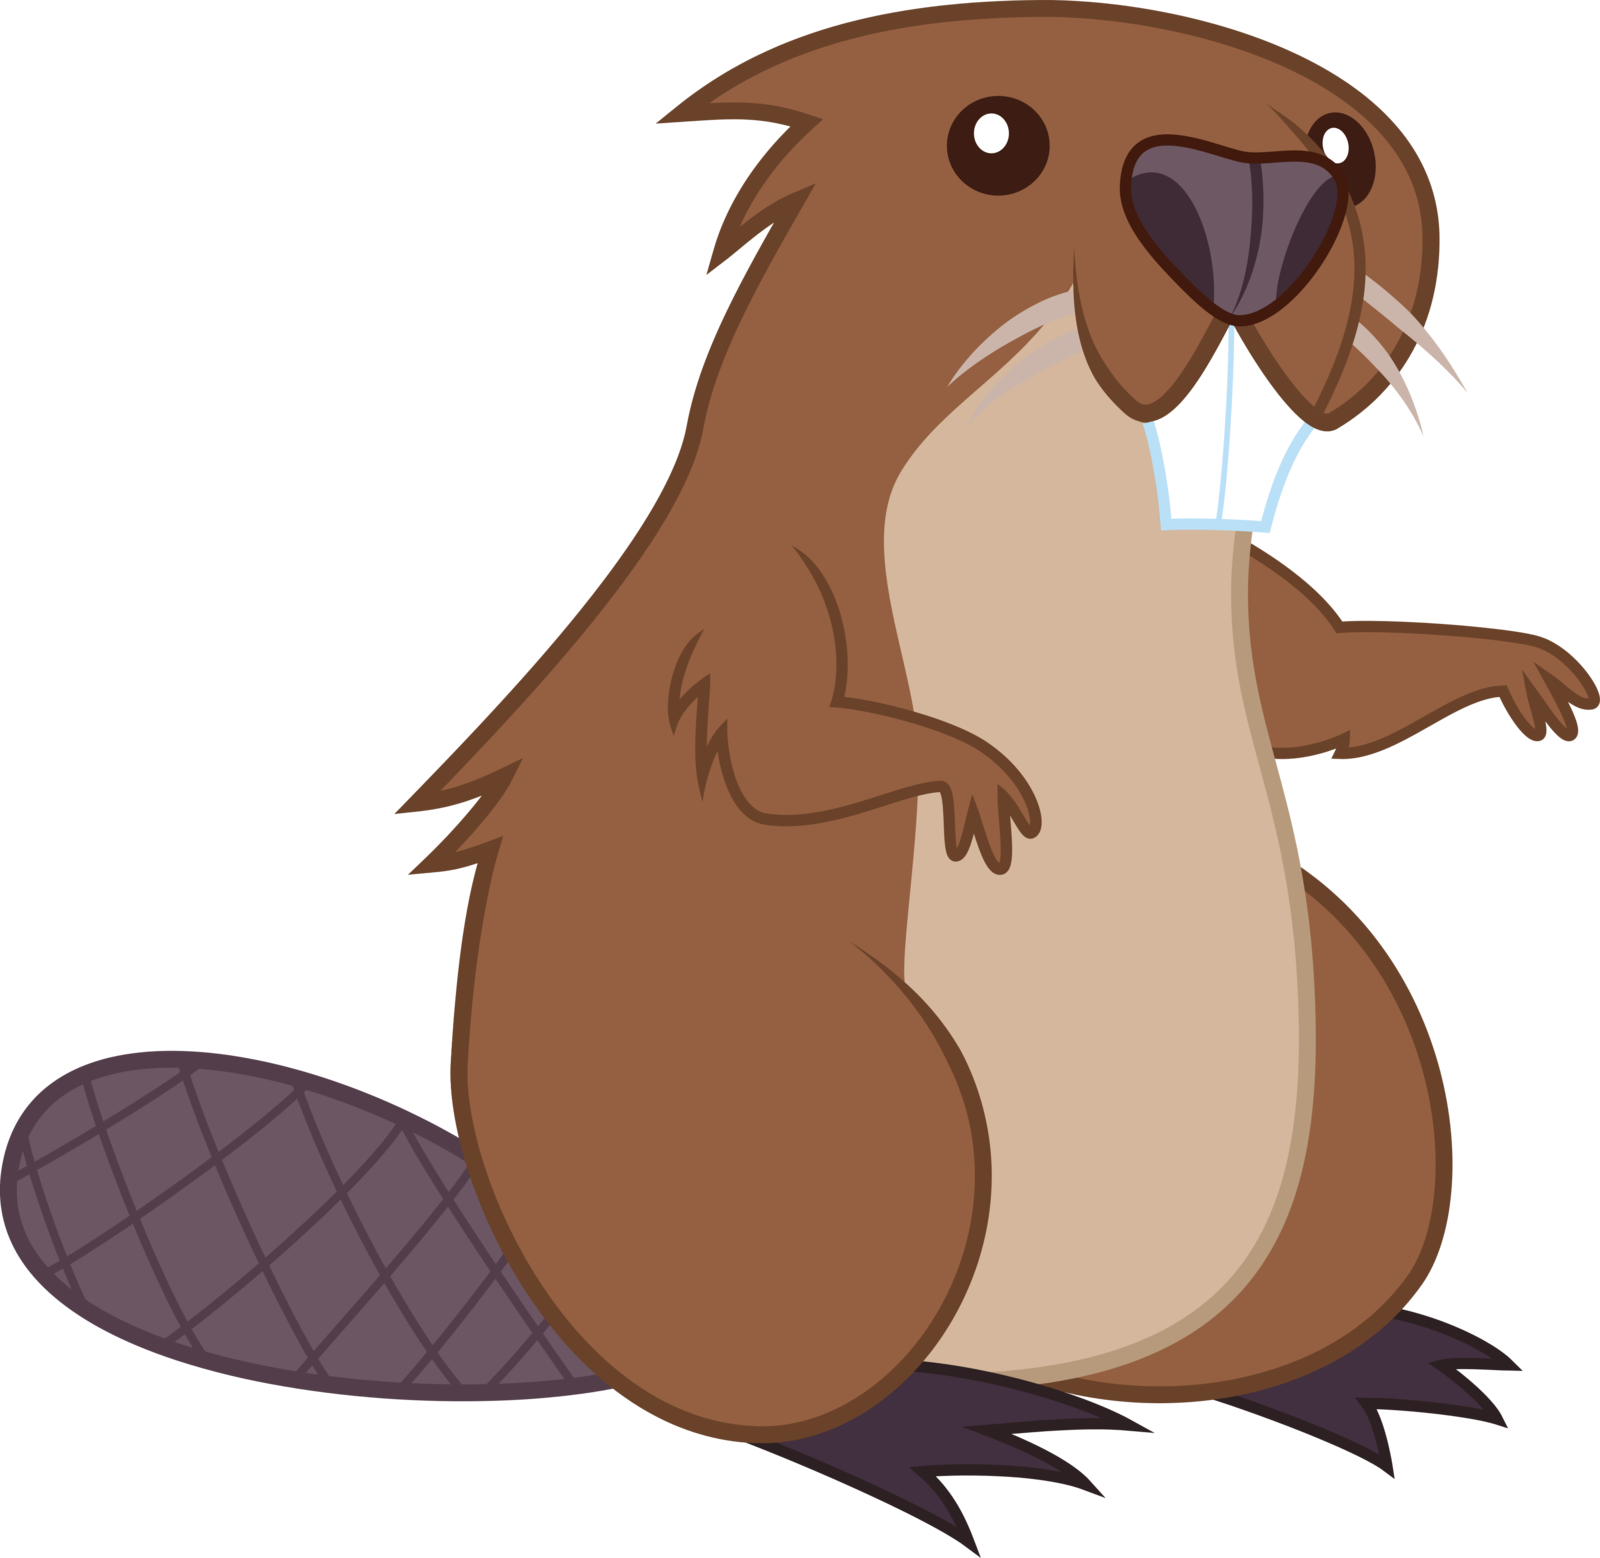 Beaver Cartoon Clip Art Transprent Png Free.